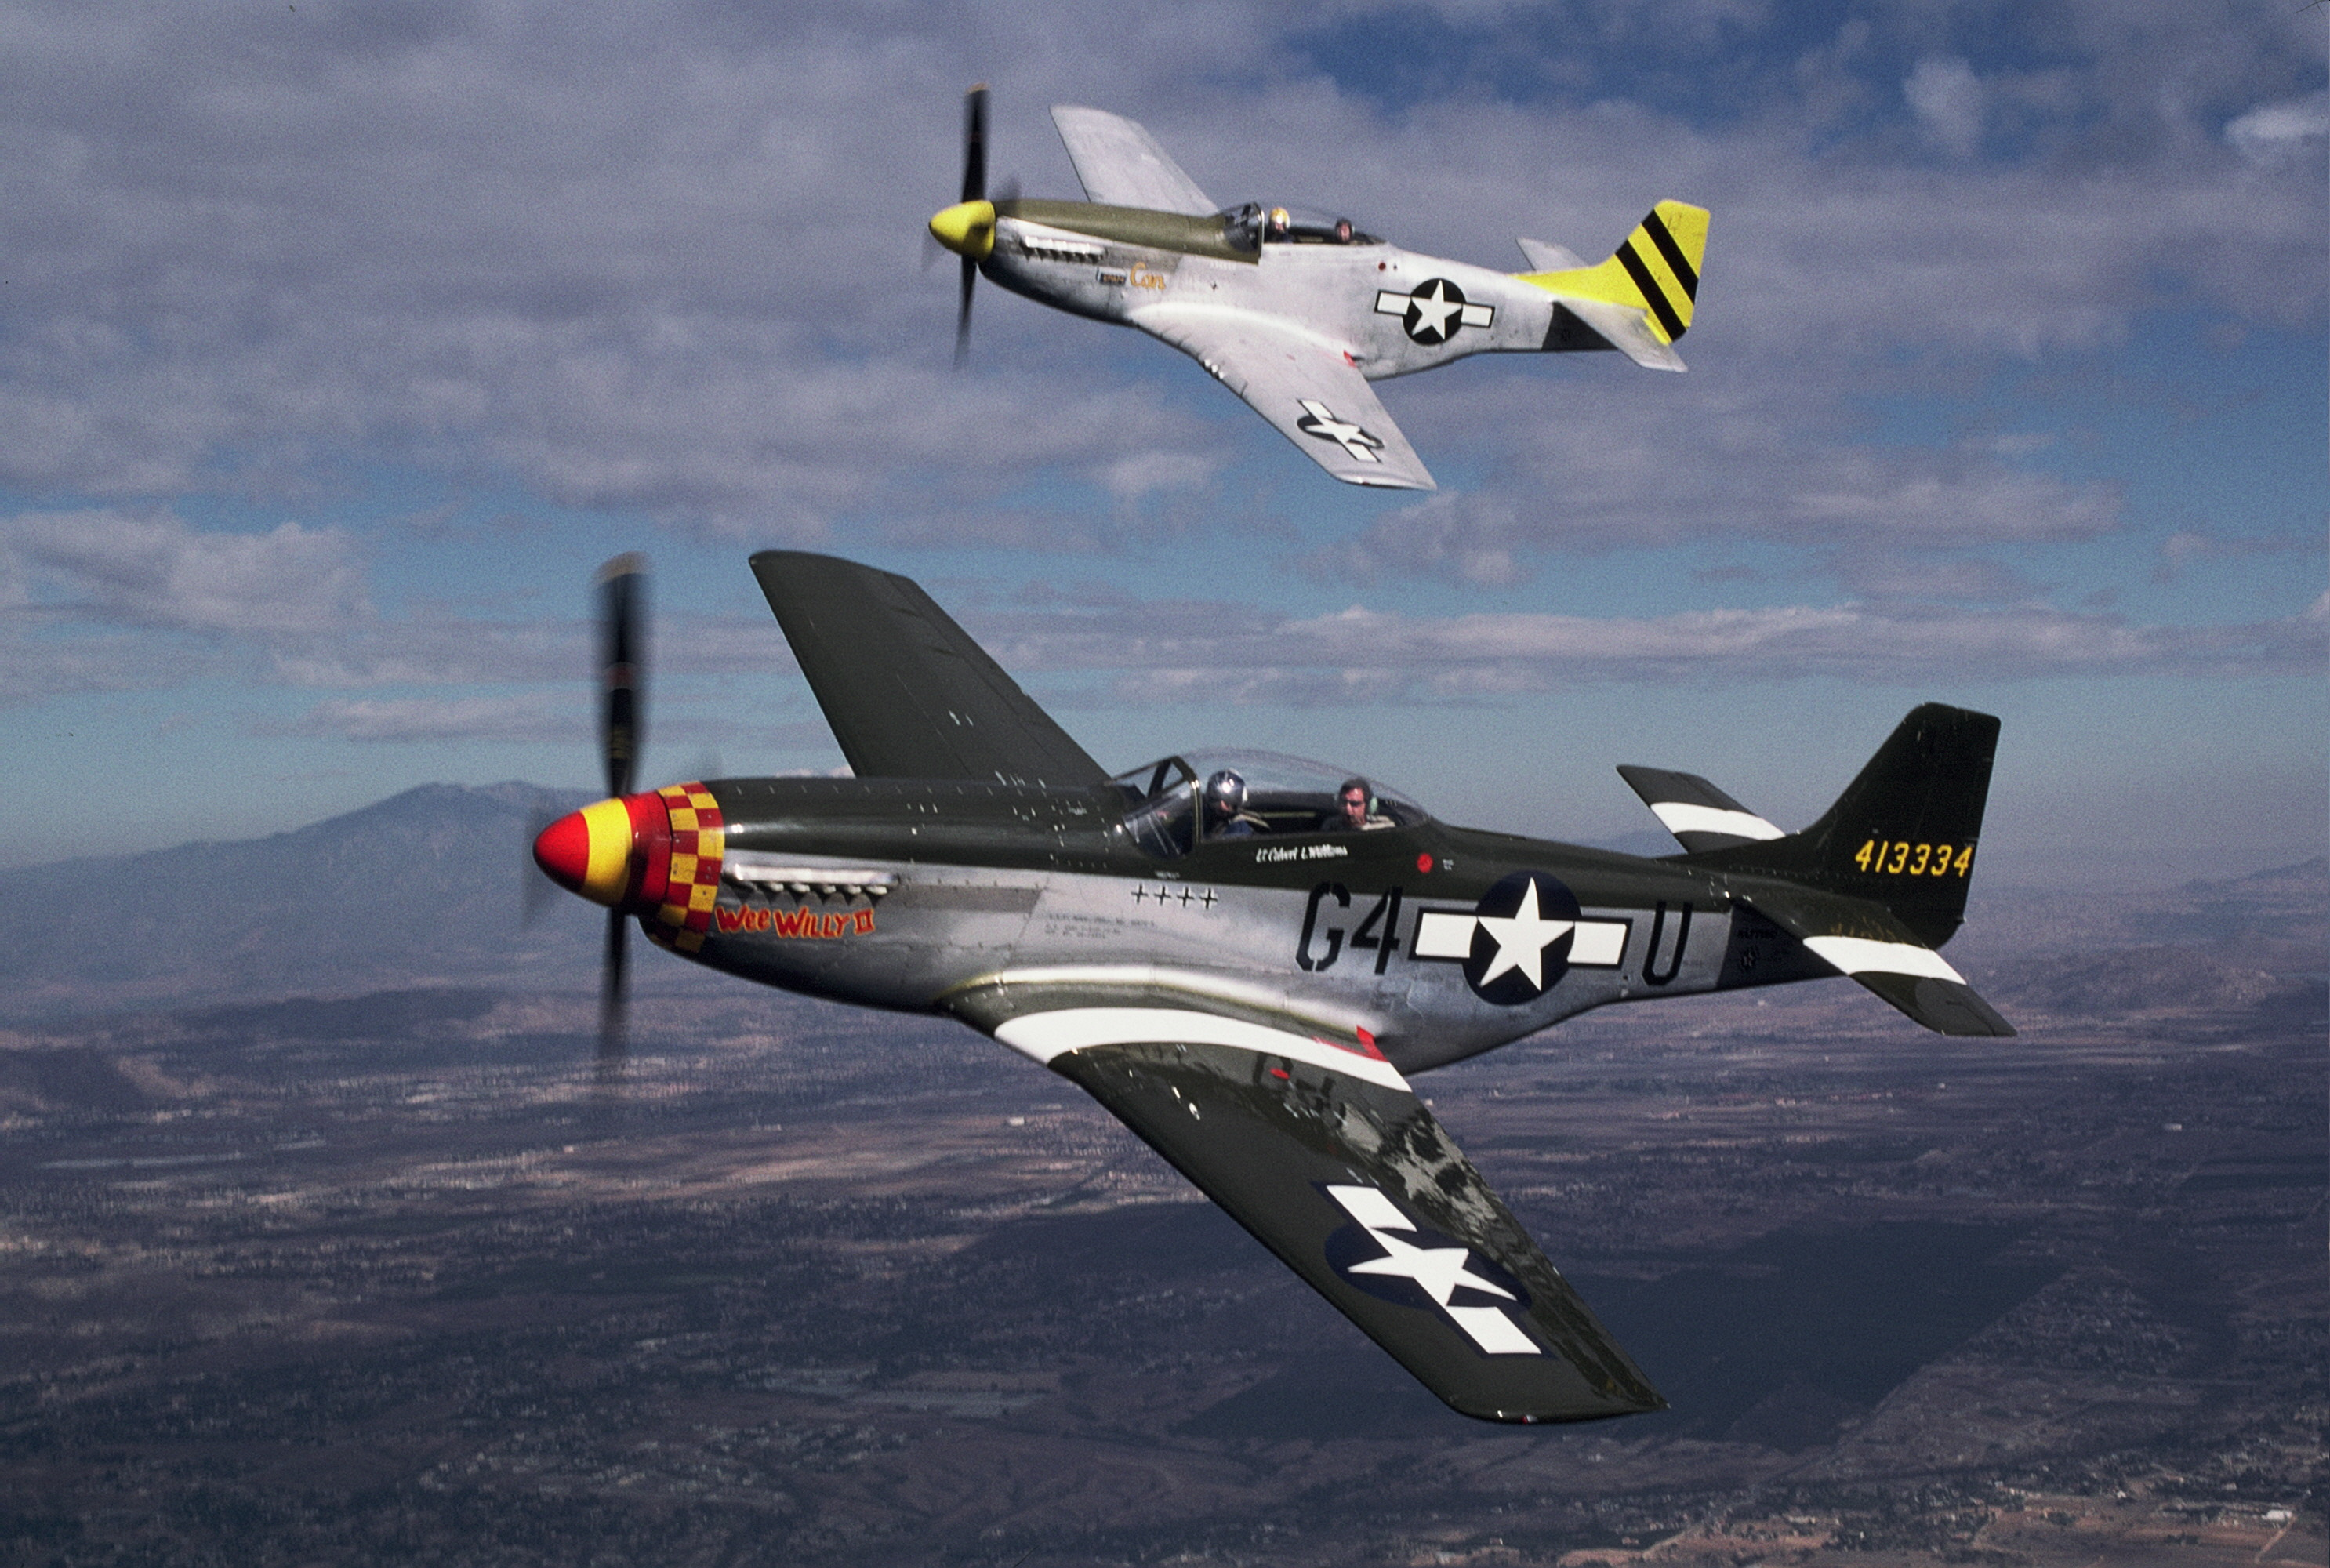 Aircraft military World War HD Wallpaper